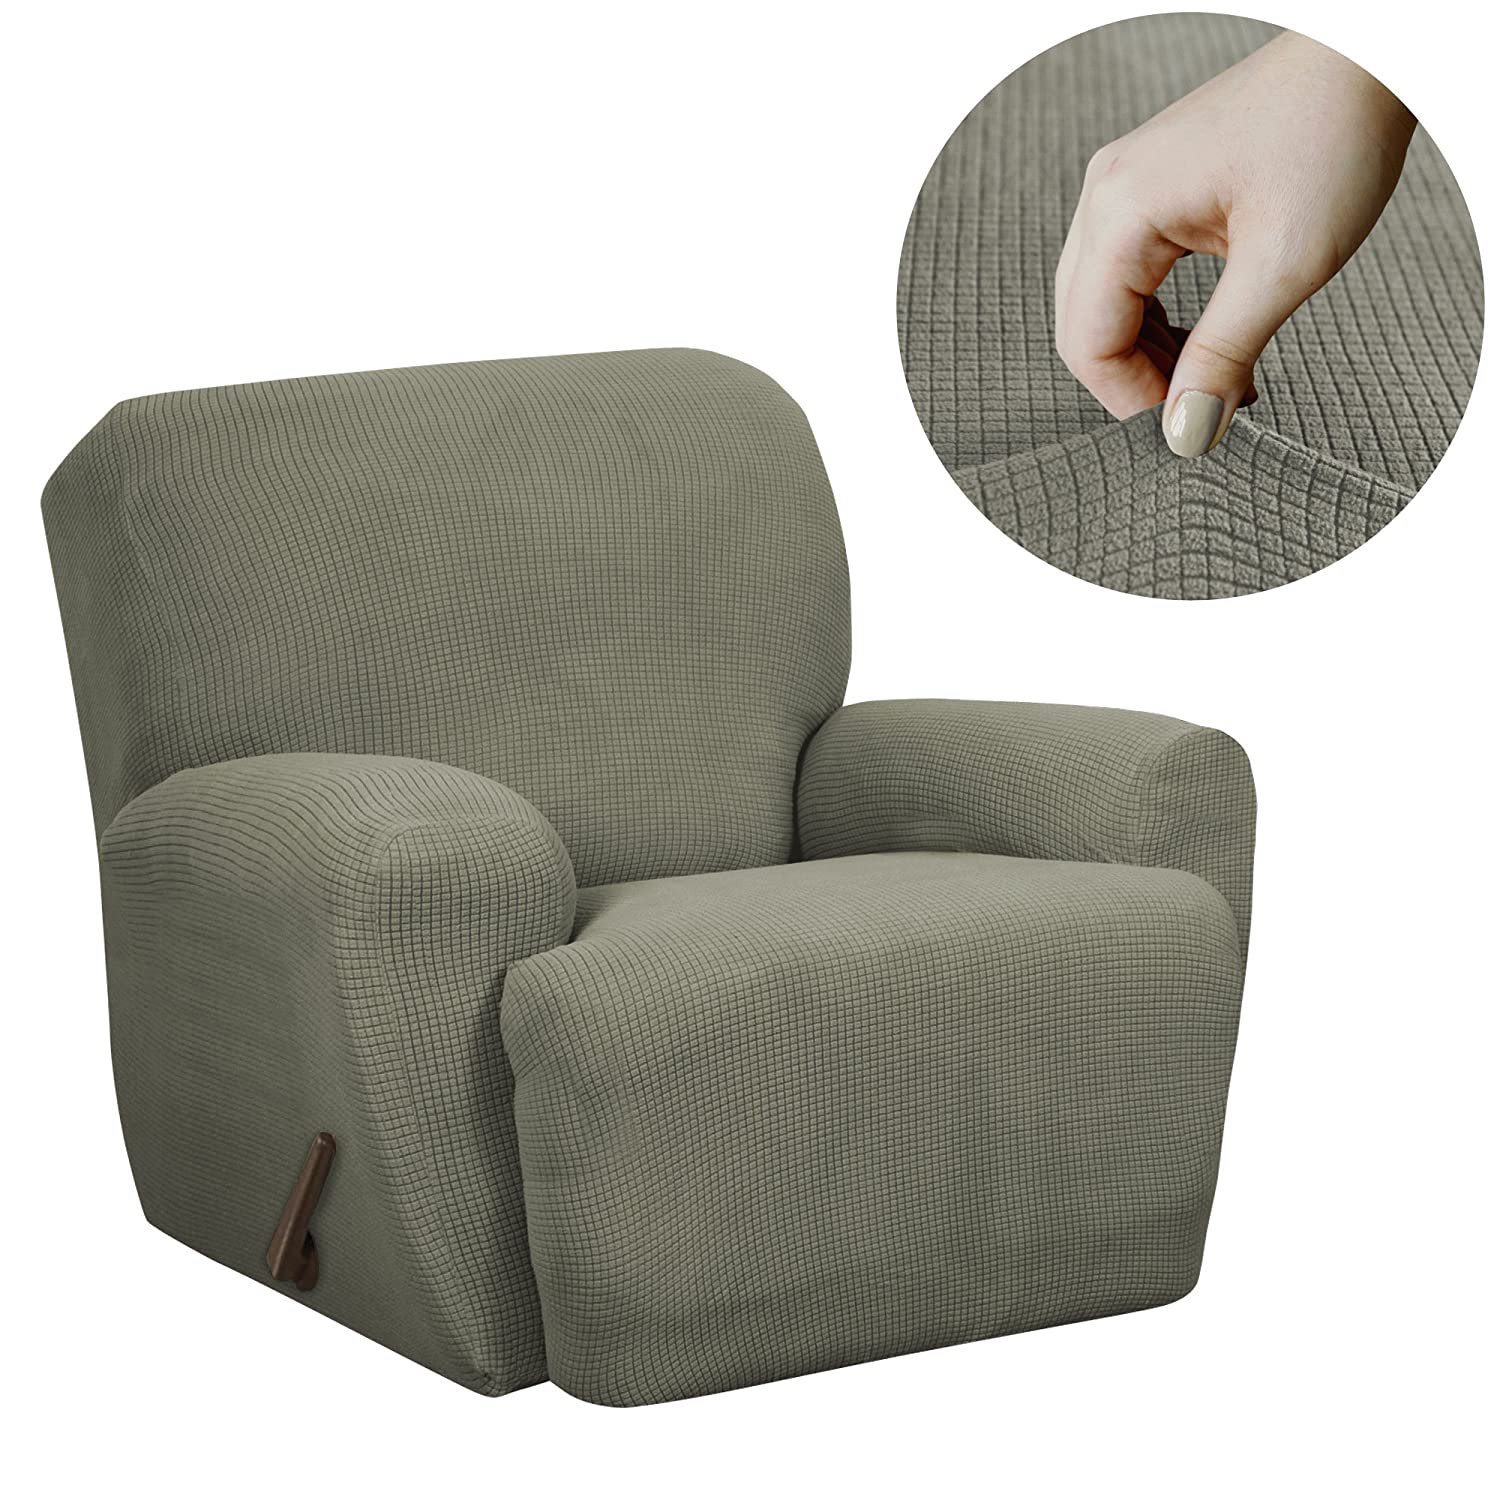 Armchair Slipcovers Online Shopping For Clothing Shoes